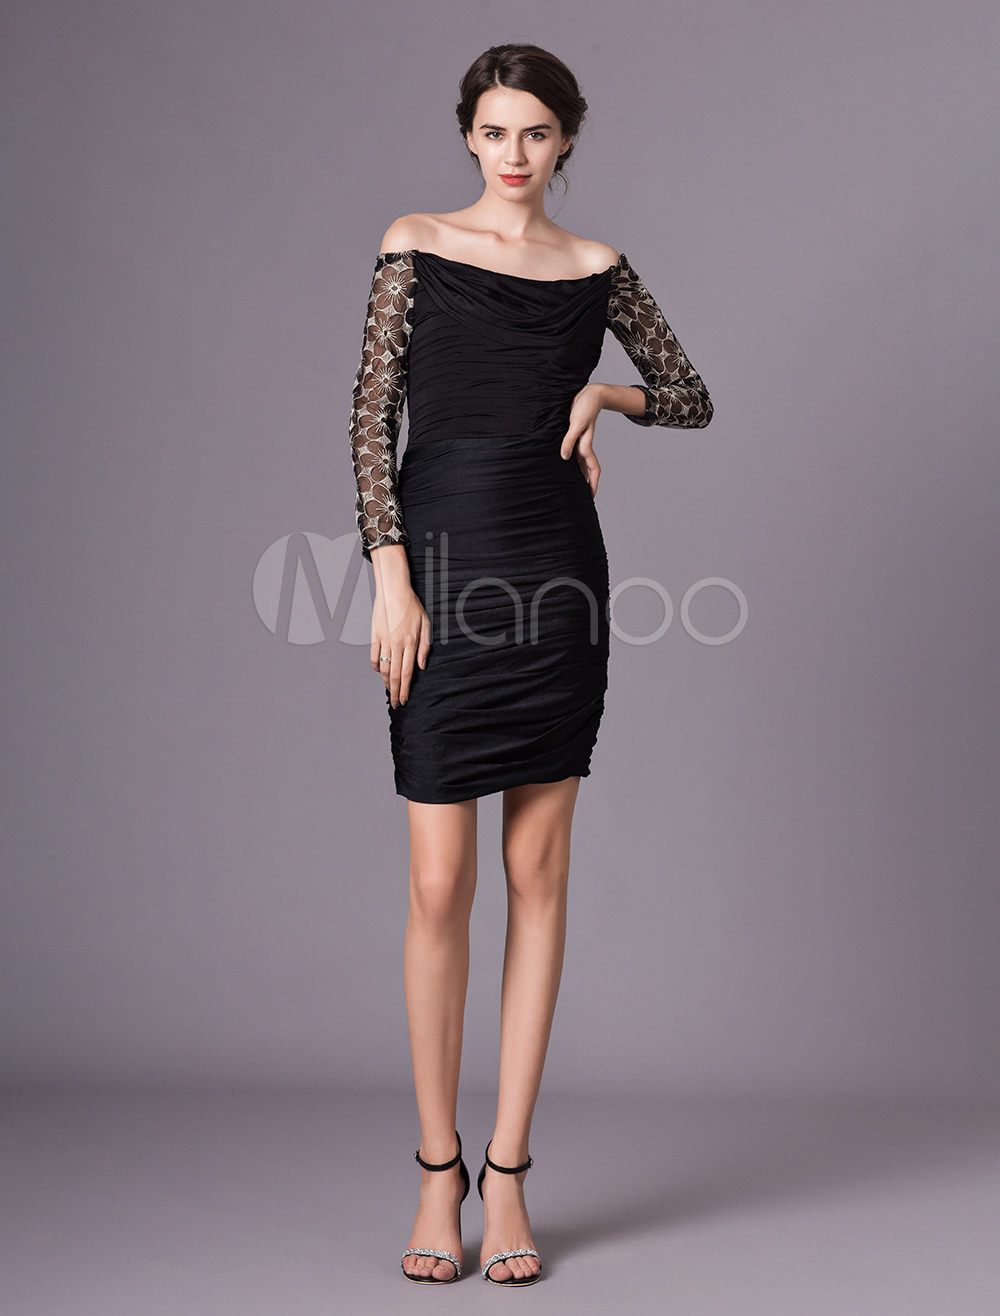 2135aae0031 Black Sheath Scoop Neck Lace Mother of the Bride Dress with 3 4 ...